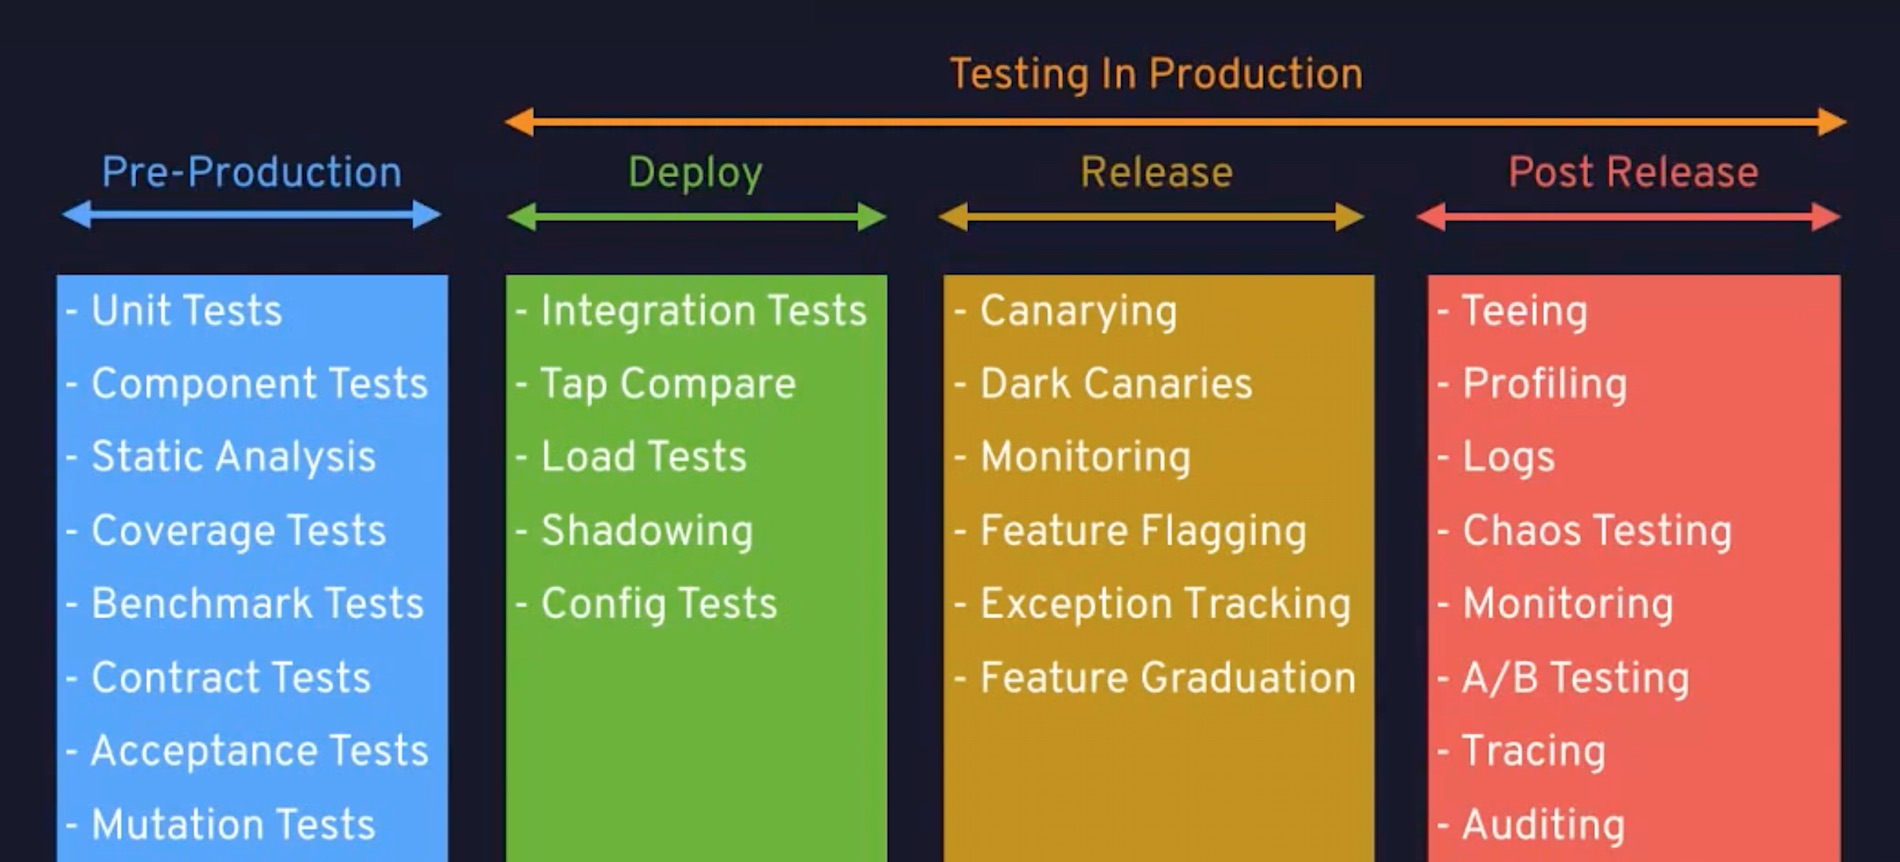 Testing in production: From DevTestOops to DevTestOps